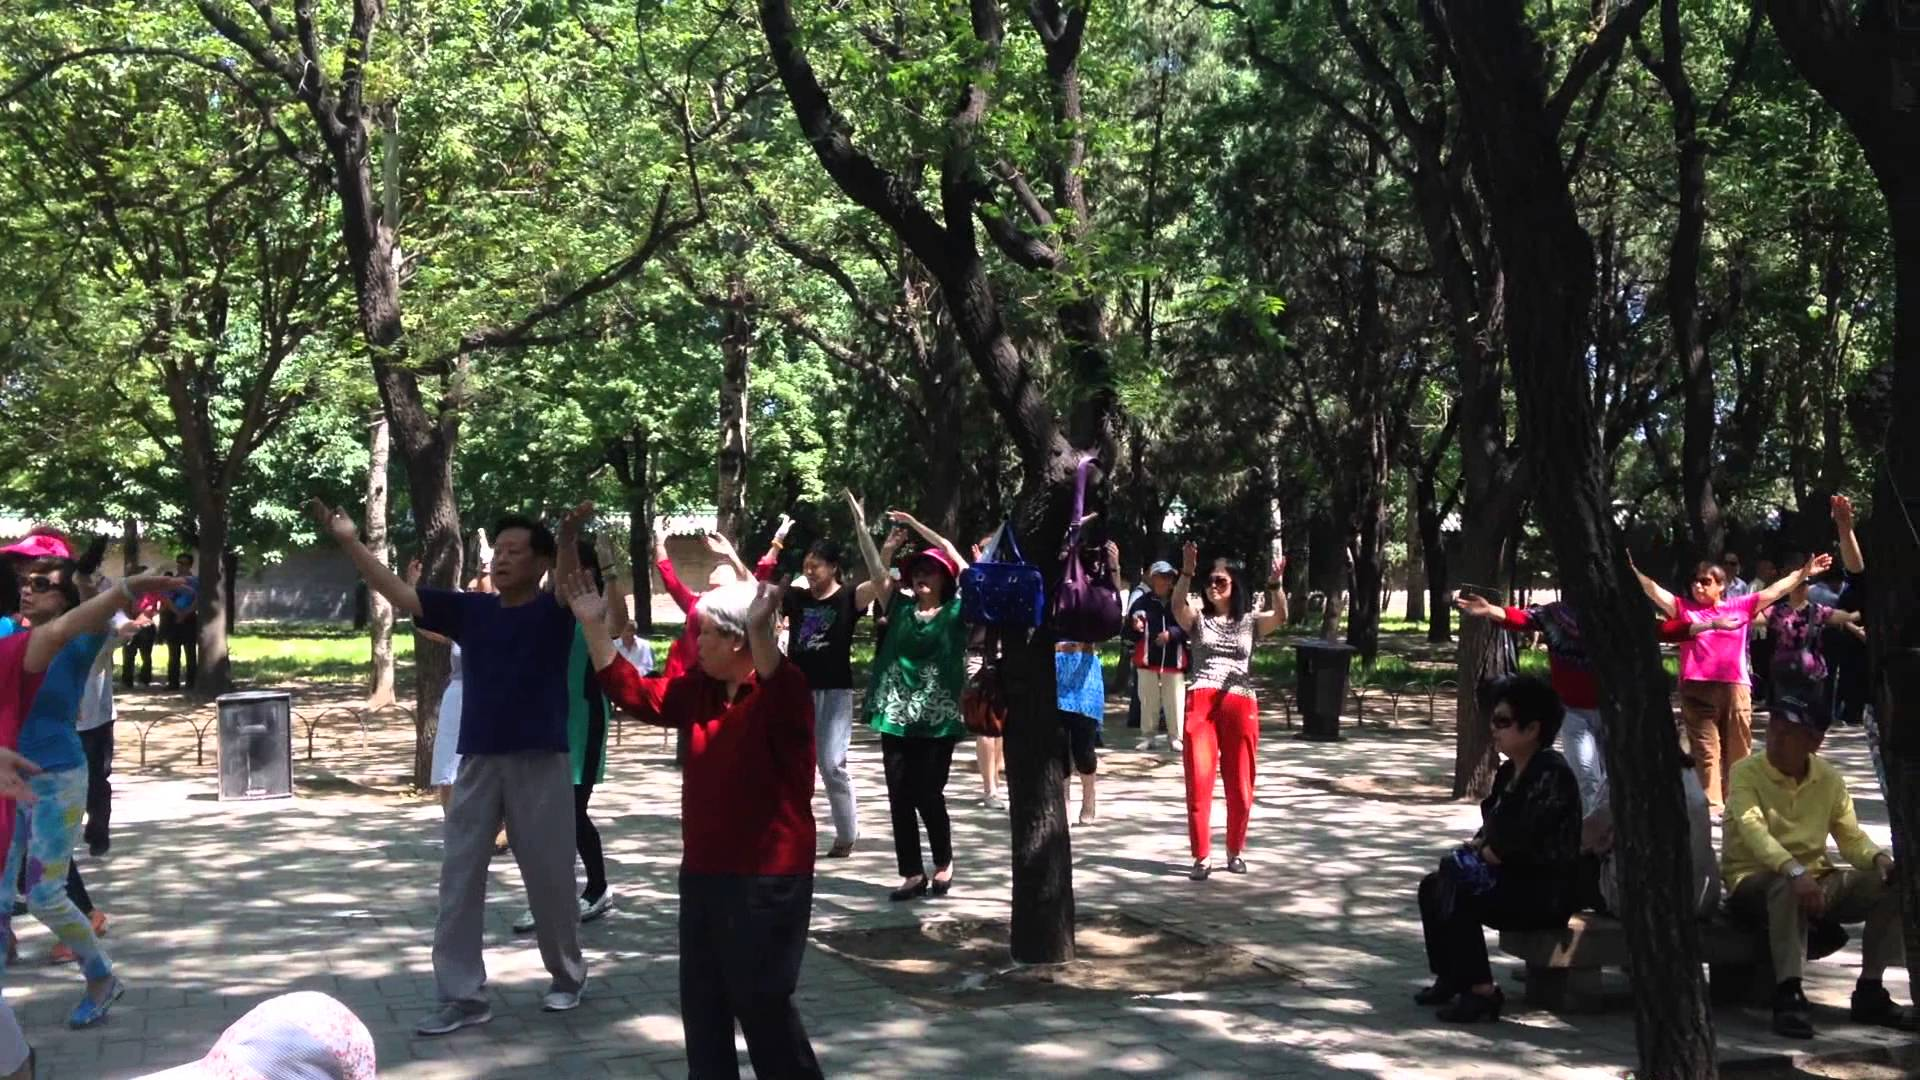 Marble Boat Běijīng, Singing and exercising at China's Temple of Heaven Park, Beijing ...